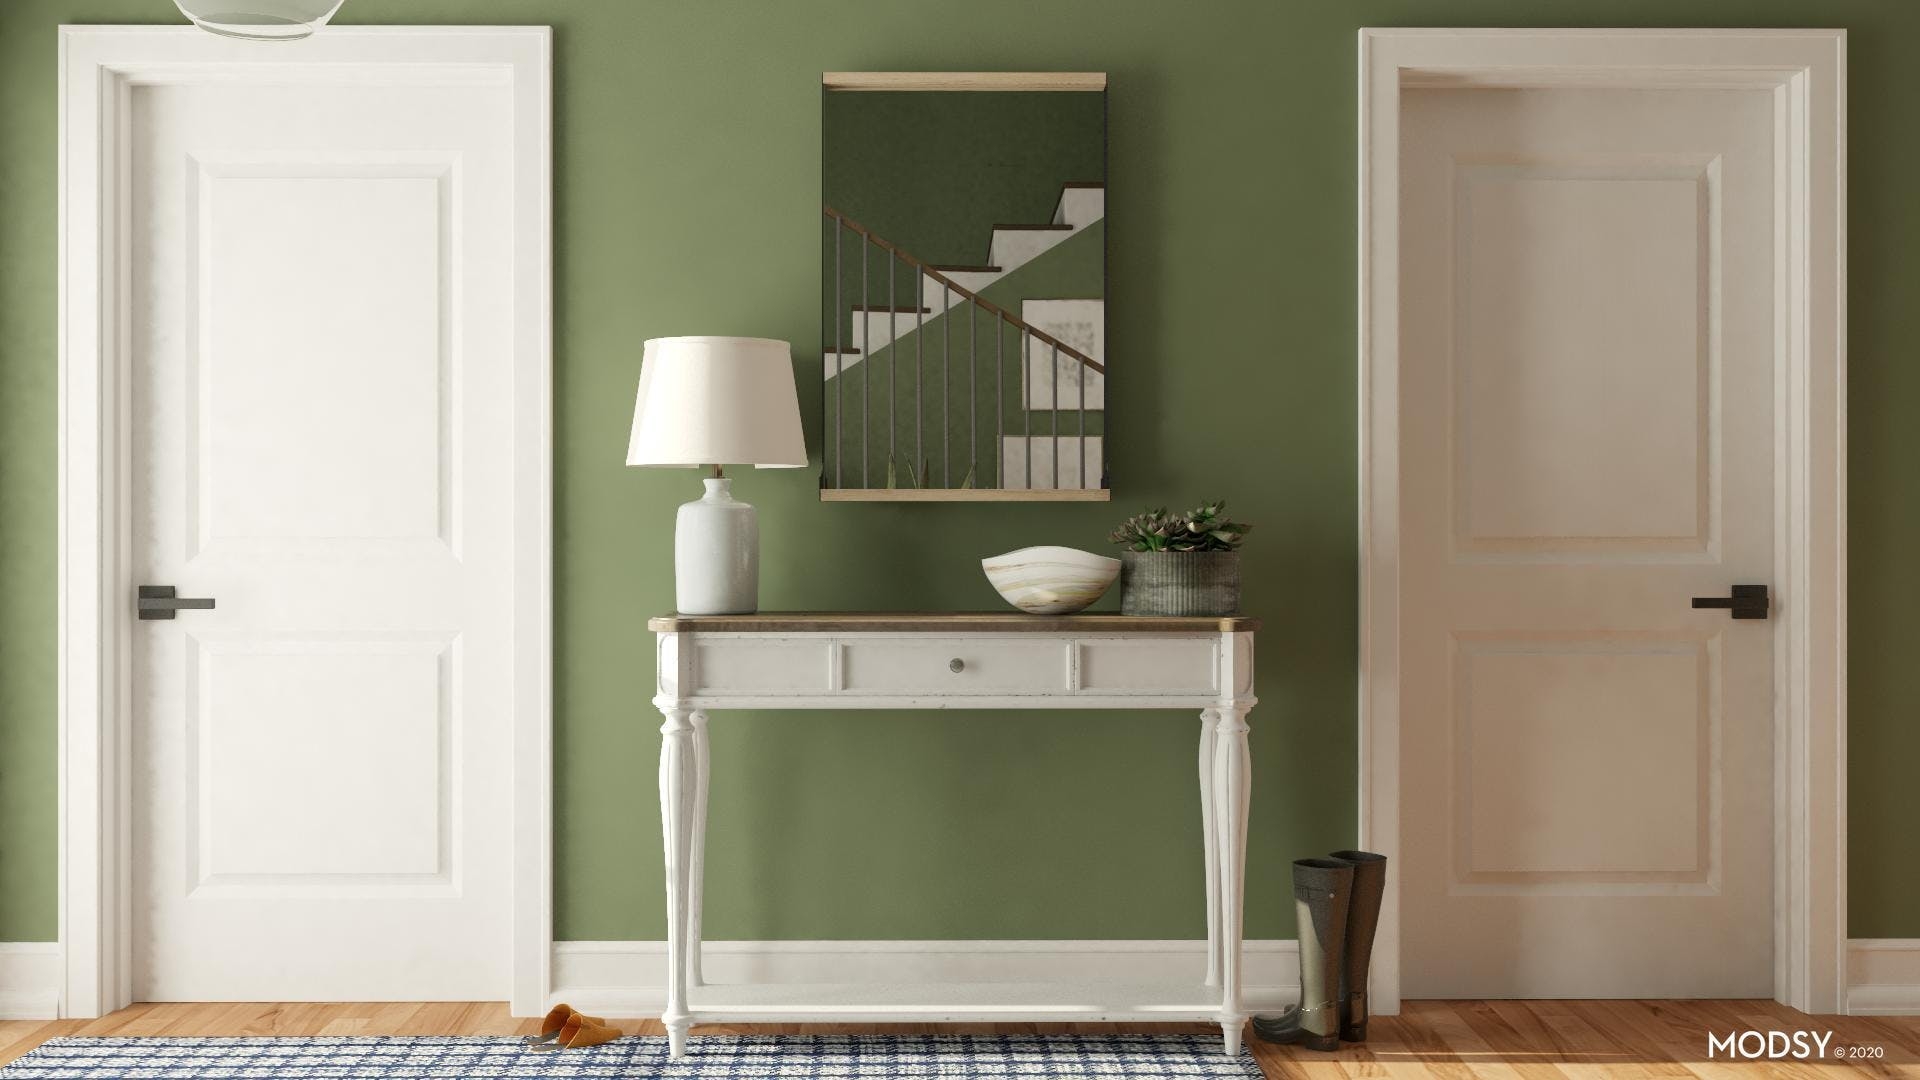 Mirrors and Storage in Rustic Entry